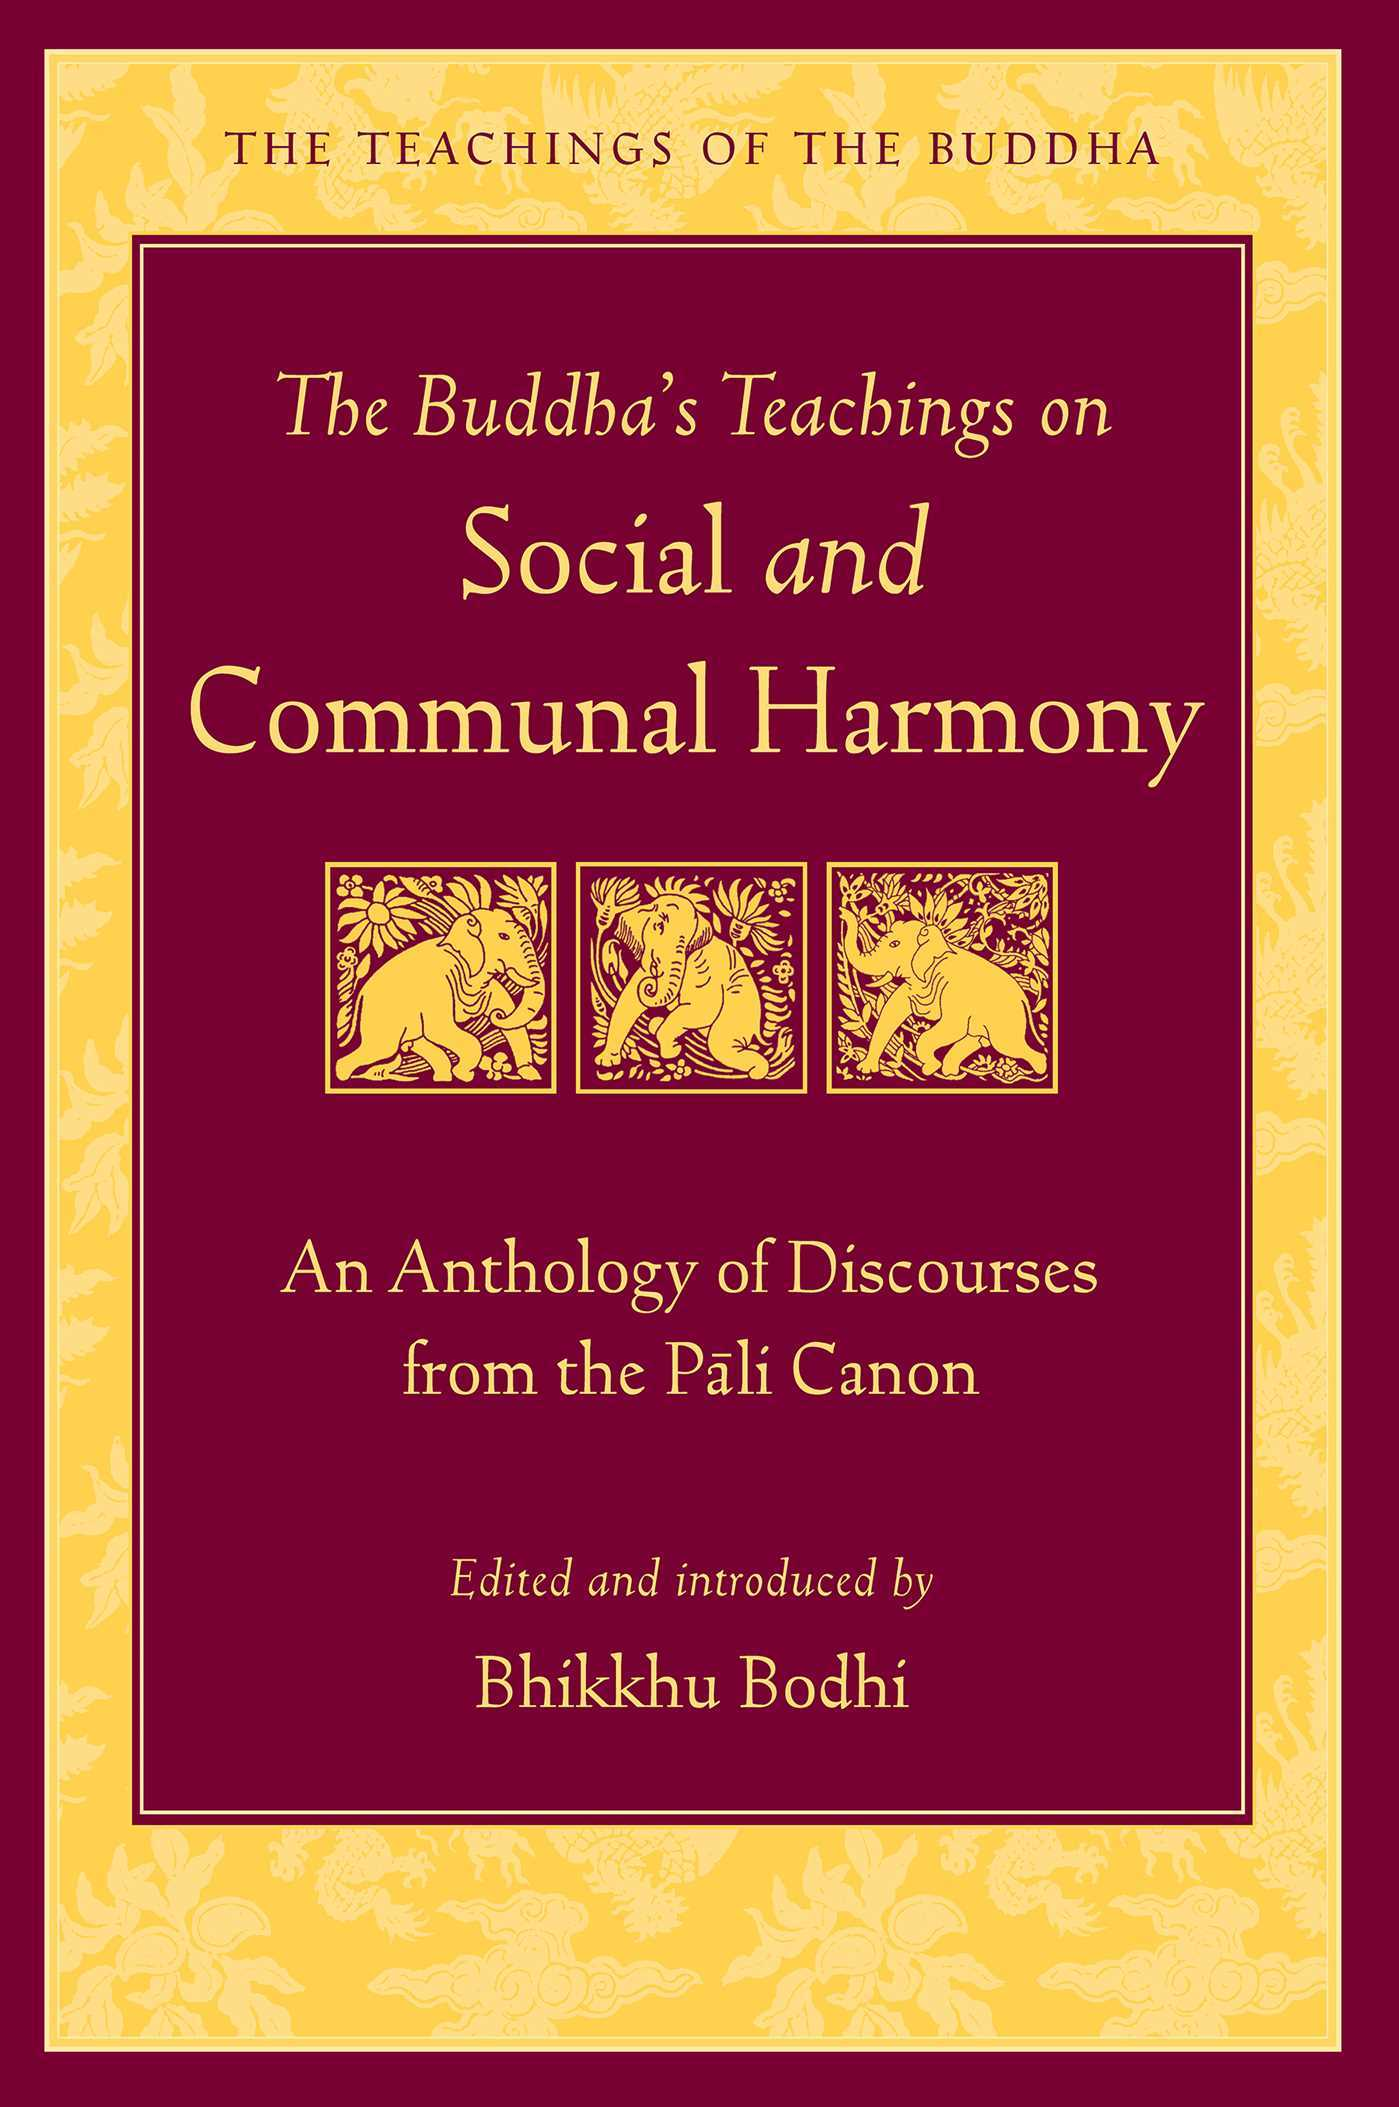 The Buddha's Teachings on Social and Communal Harmony  An Anthology of Discourses from the Pali Canon